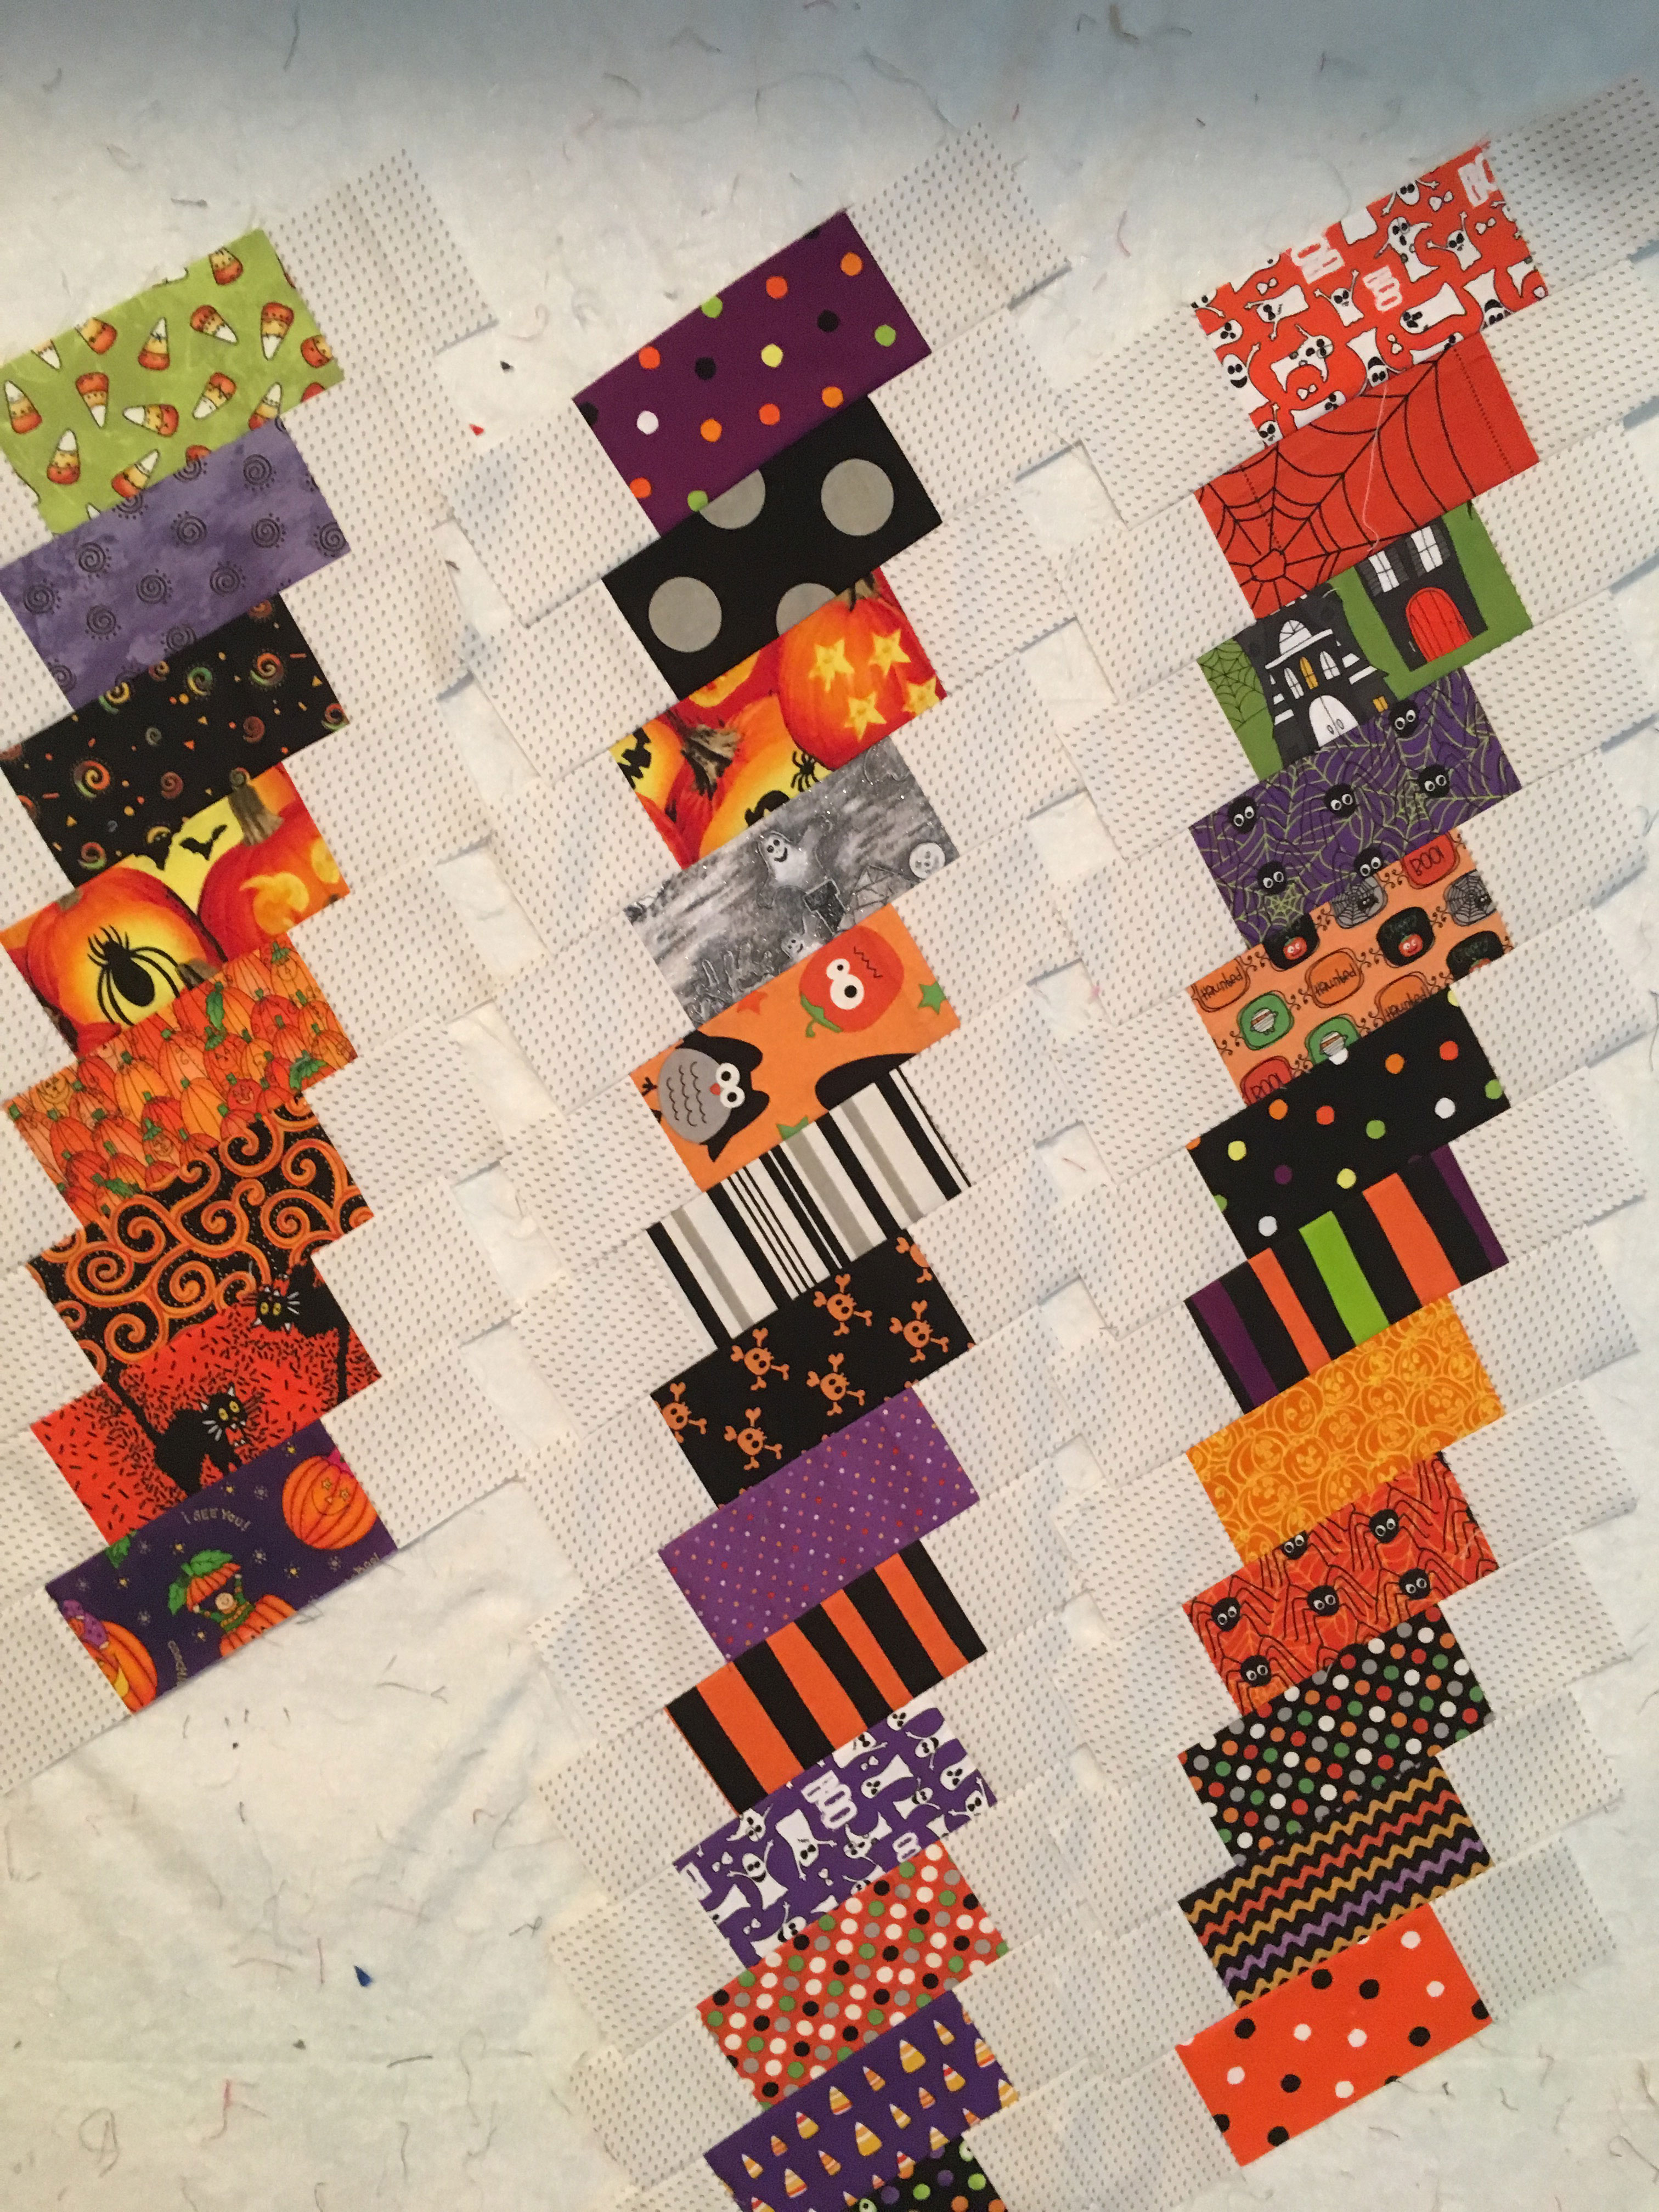 Design Wall Tuesday – Halloween Quilt - The Quilting Company : quilting wall - Adamdwight.com